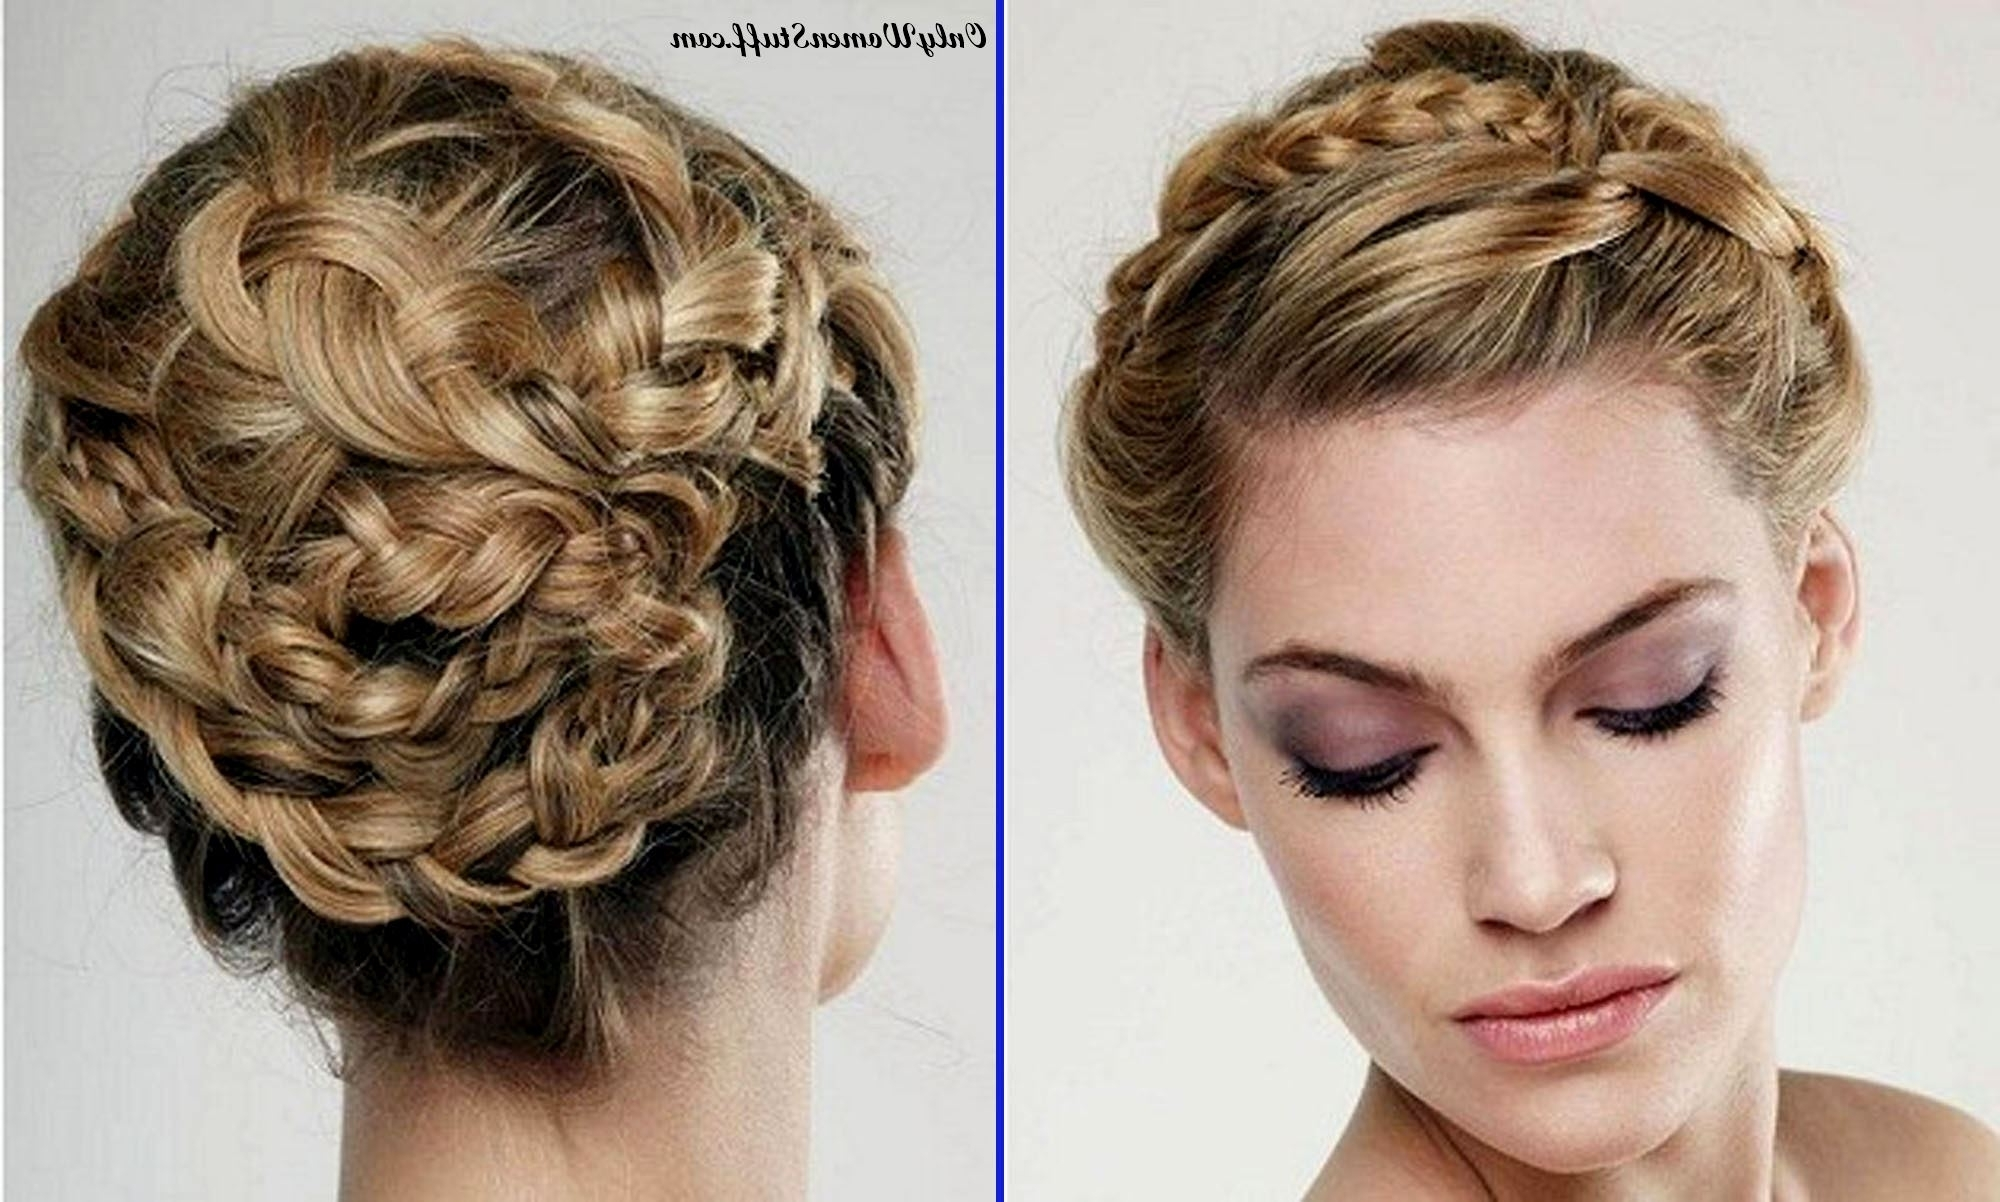 50+ Easy Prom Hairstyles & Updos Ideas (stepstep) Pertaining To Prom Updo Hairstyles For Medium Hair (View 14 of 15)